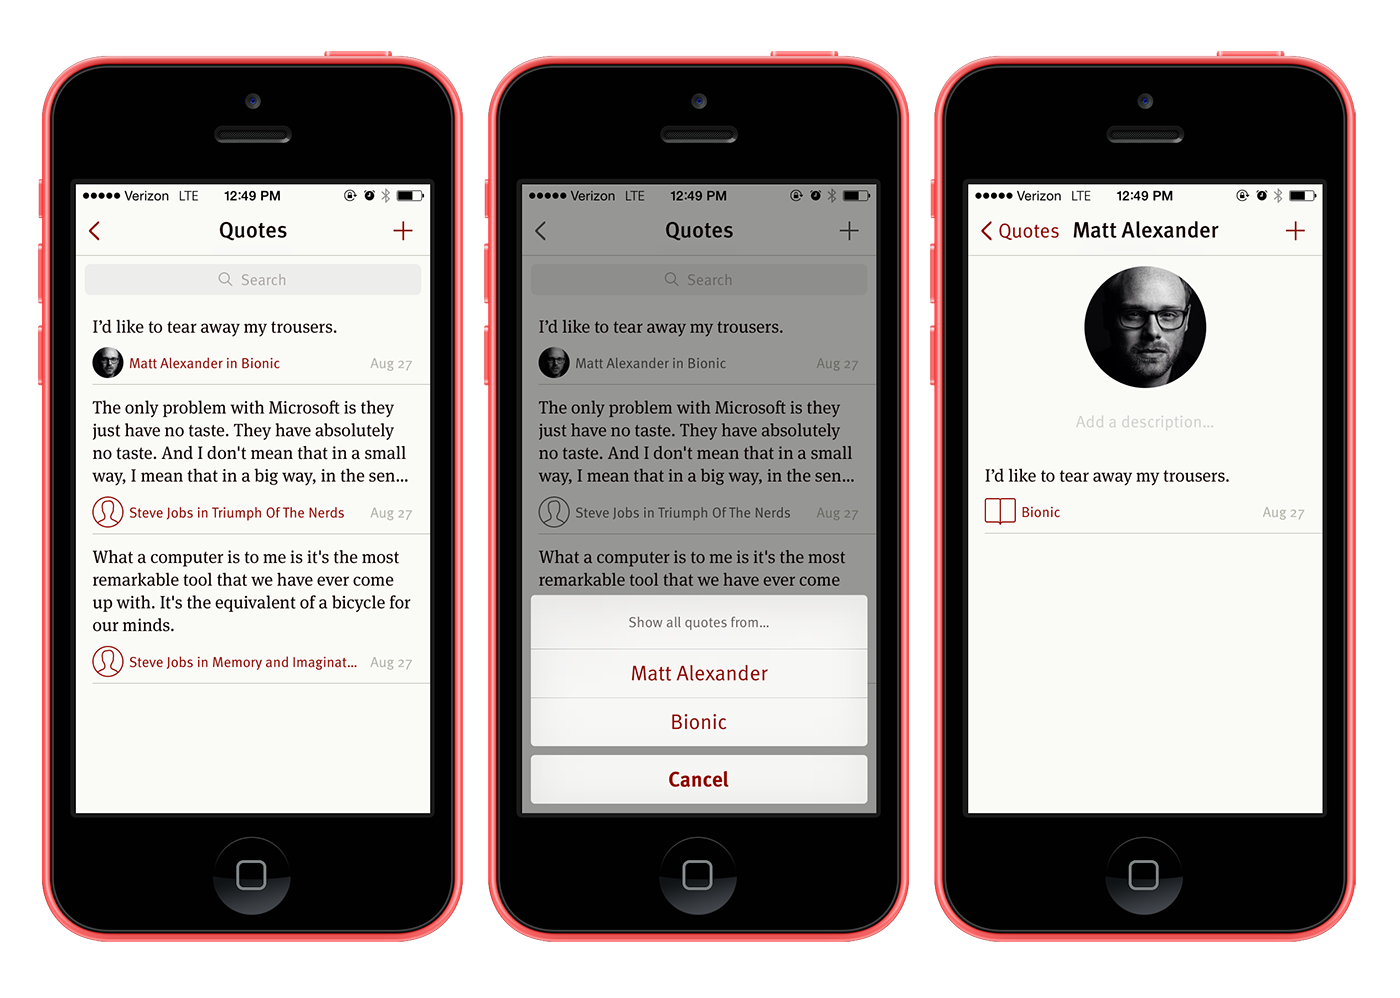 Quotebook 3 for iPhone